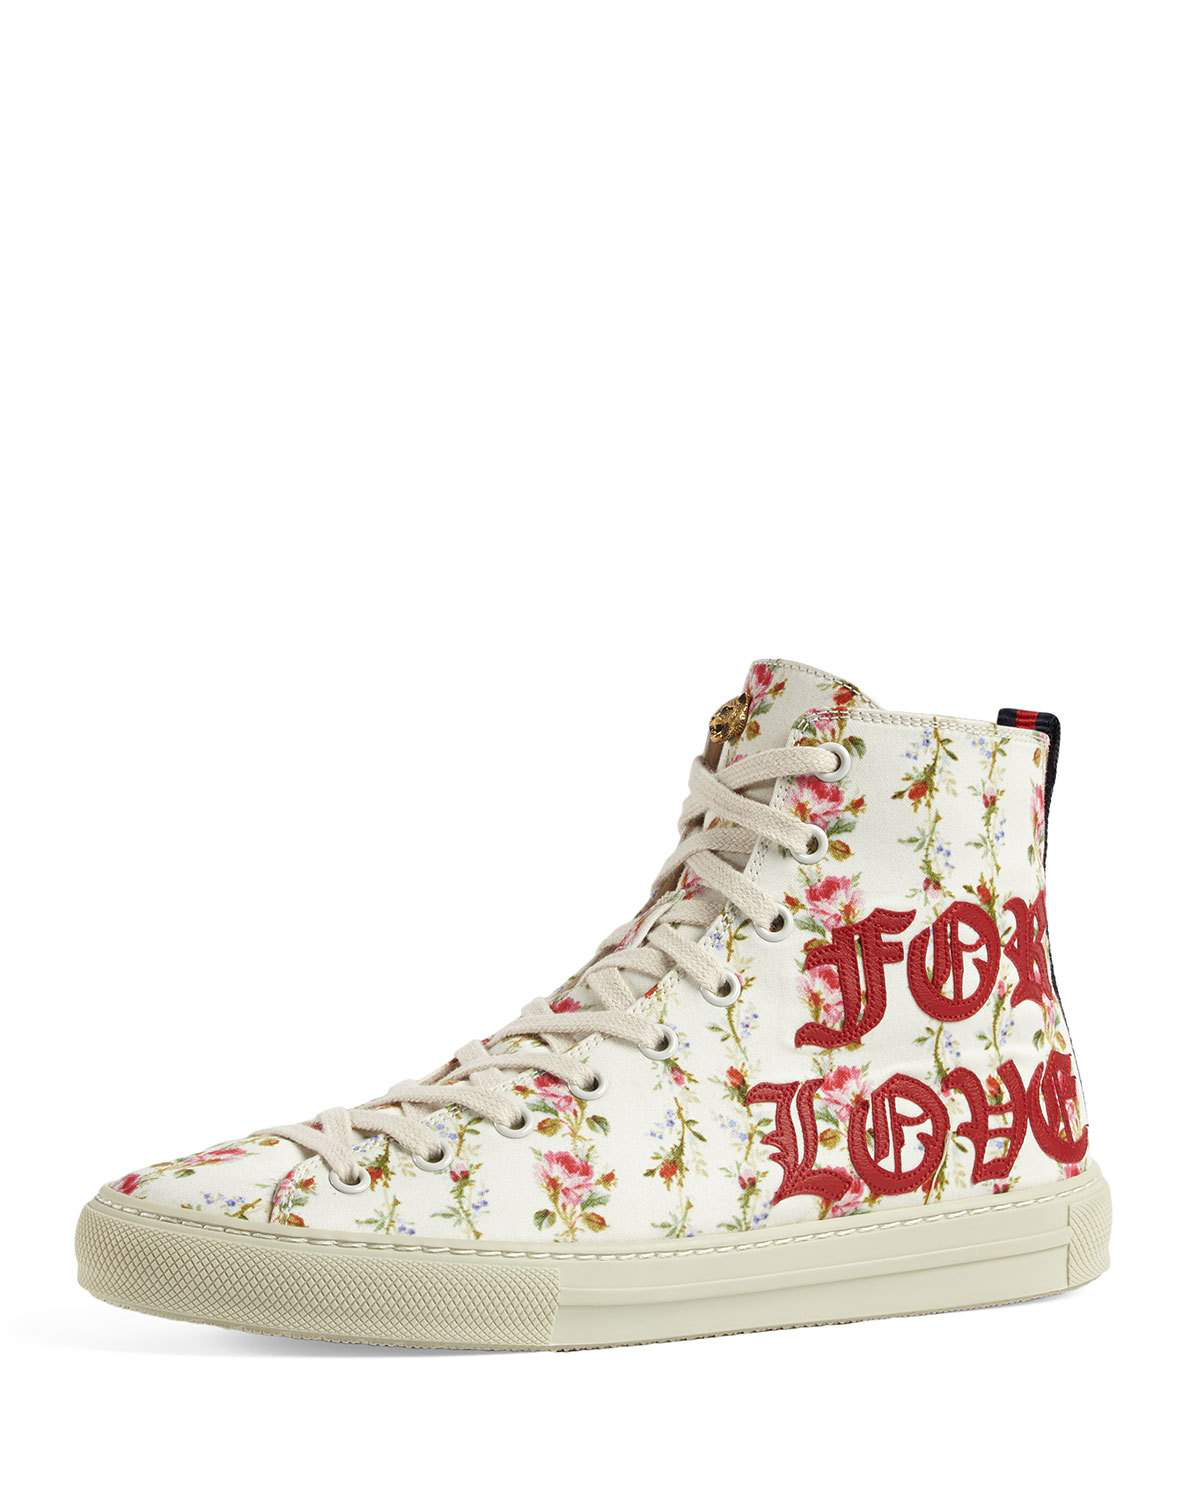 f7101b4b3324 Gucci Major Blind For Love Rose Print Satin High Top Sneakers In Ivory